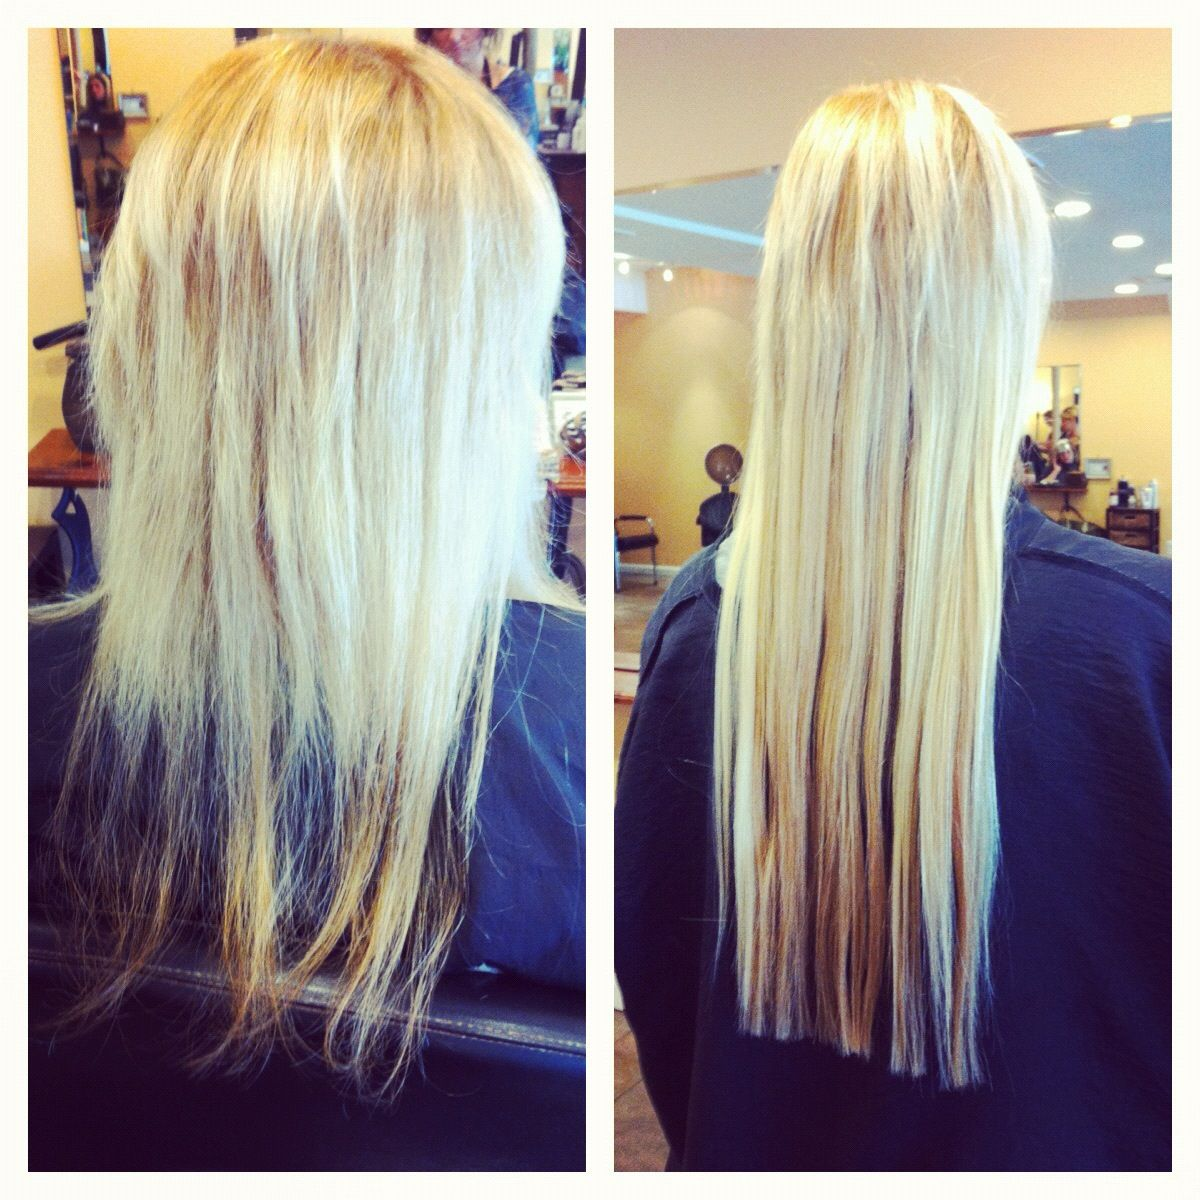 Hair Extensions To Help Ease The Grow Out Of Damaged Hair These Extensions Are So Gentle They Will Not Cause Any Damage To Exis Damaged Hair Hair Hair Styles